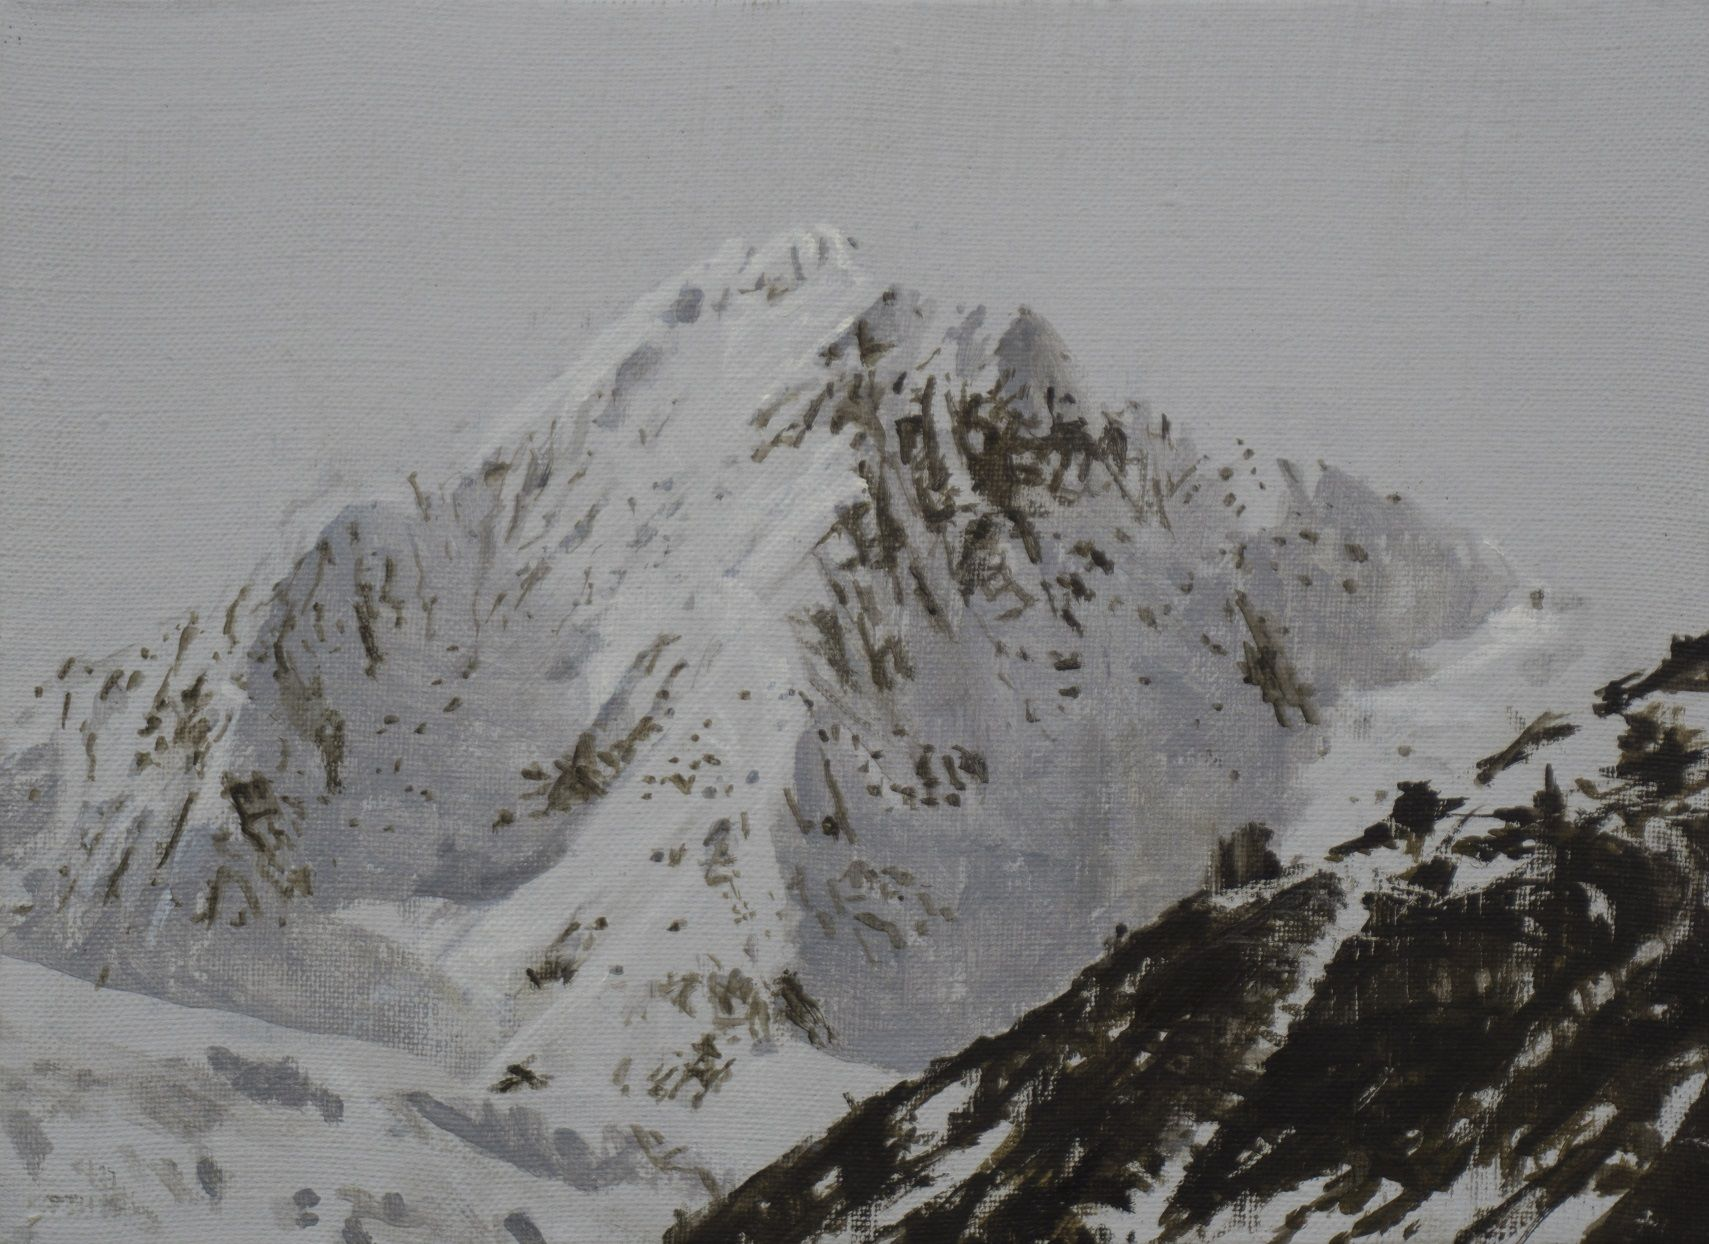 Benasque Study 1, Snow collection